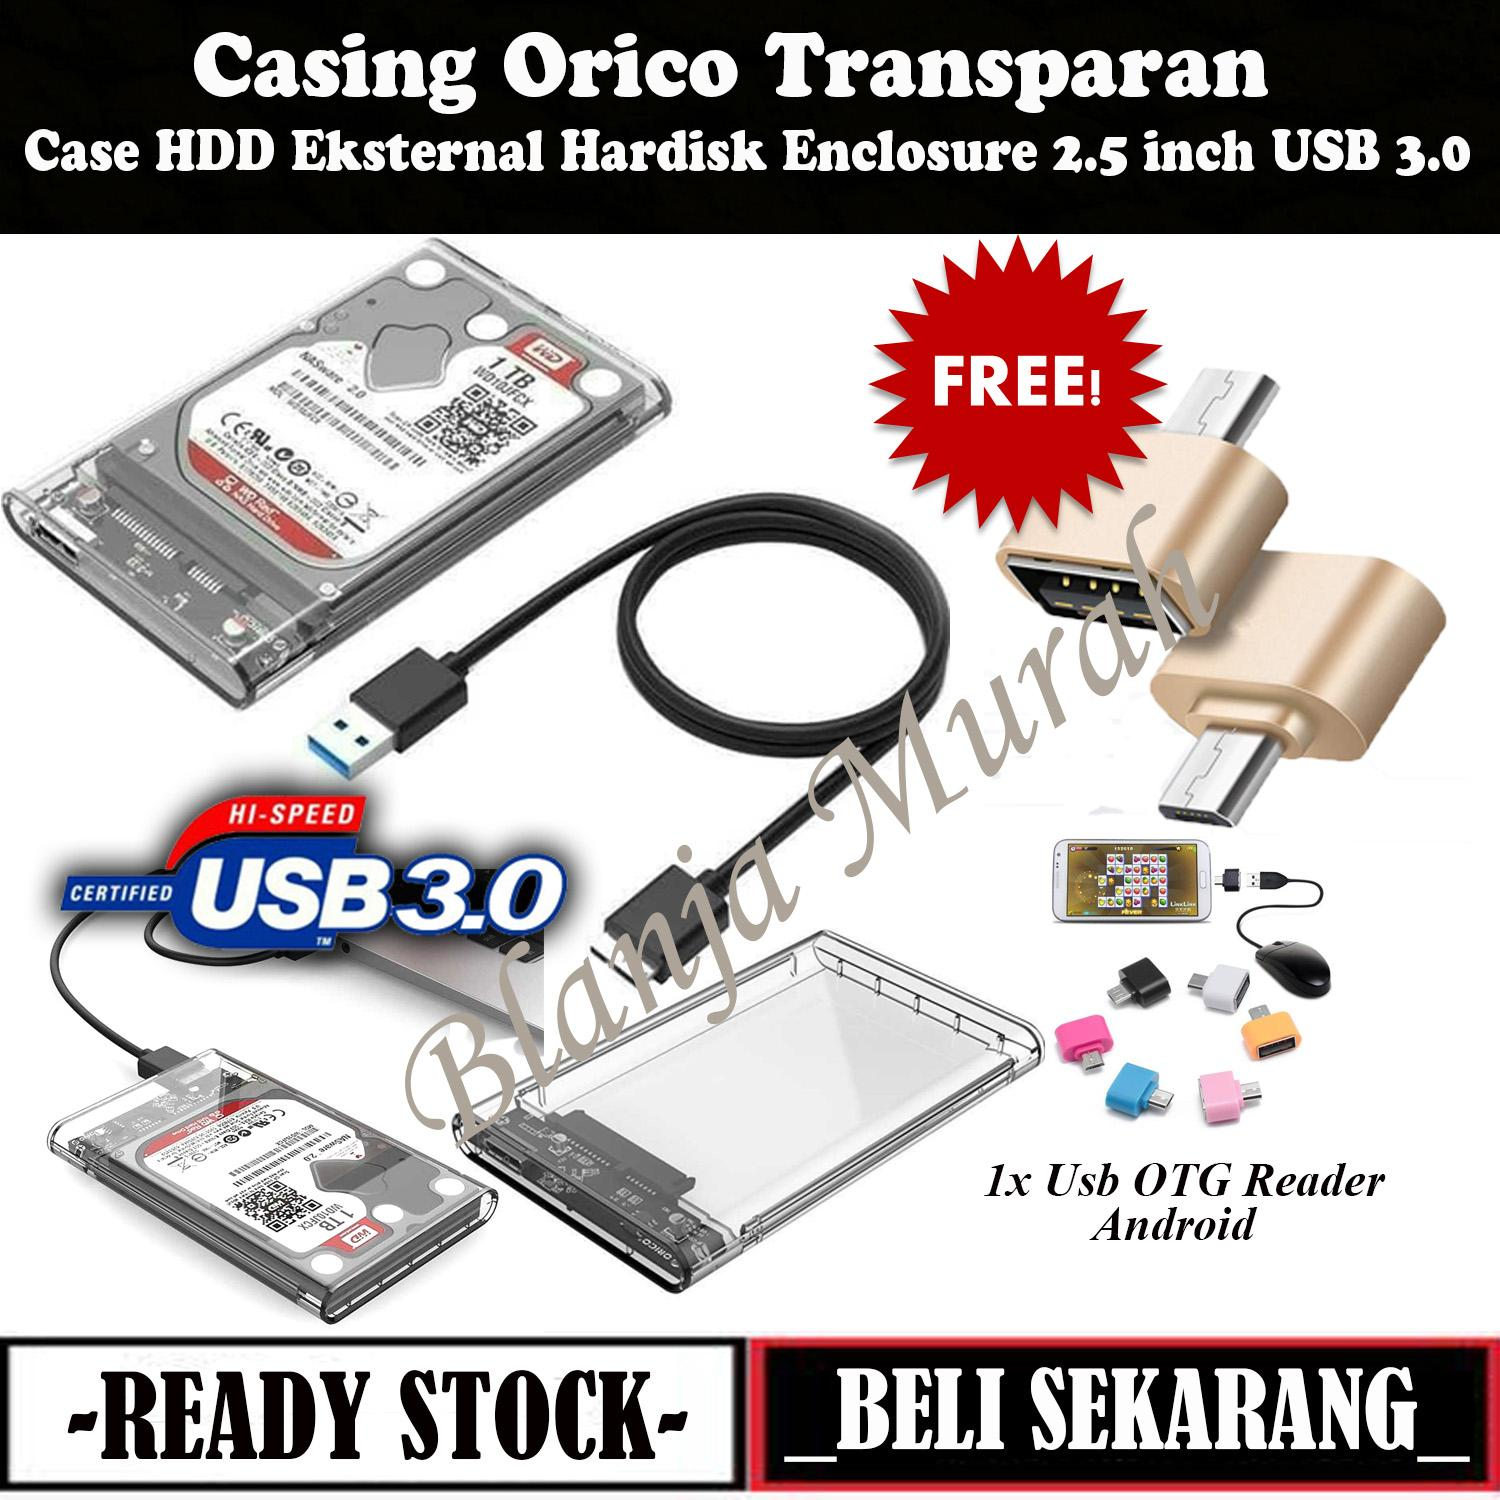 Case HDD Eksternal Casing Orico Transparan Hardisk Enclosure 2.5 inch USB 3.0 - FREE HOT BONUS